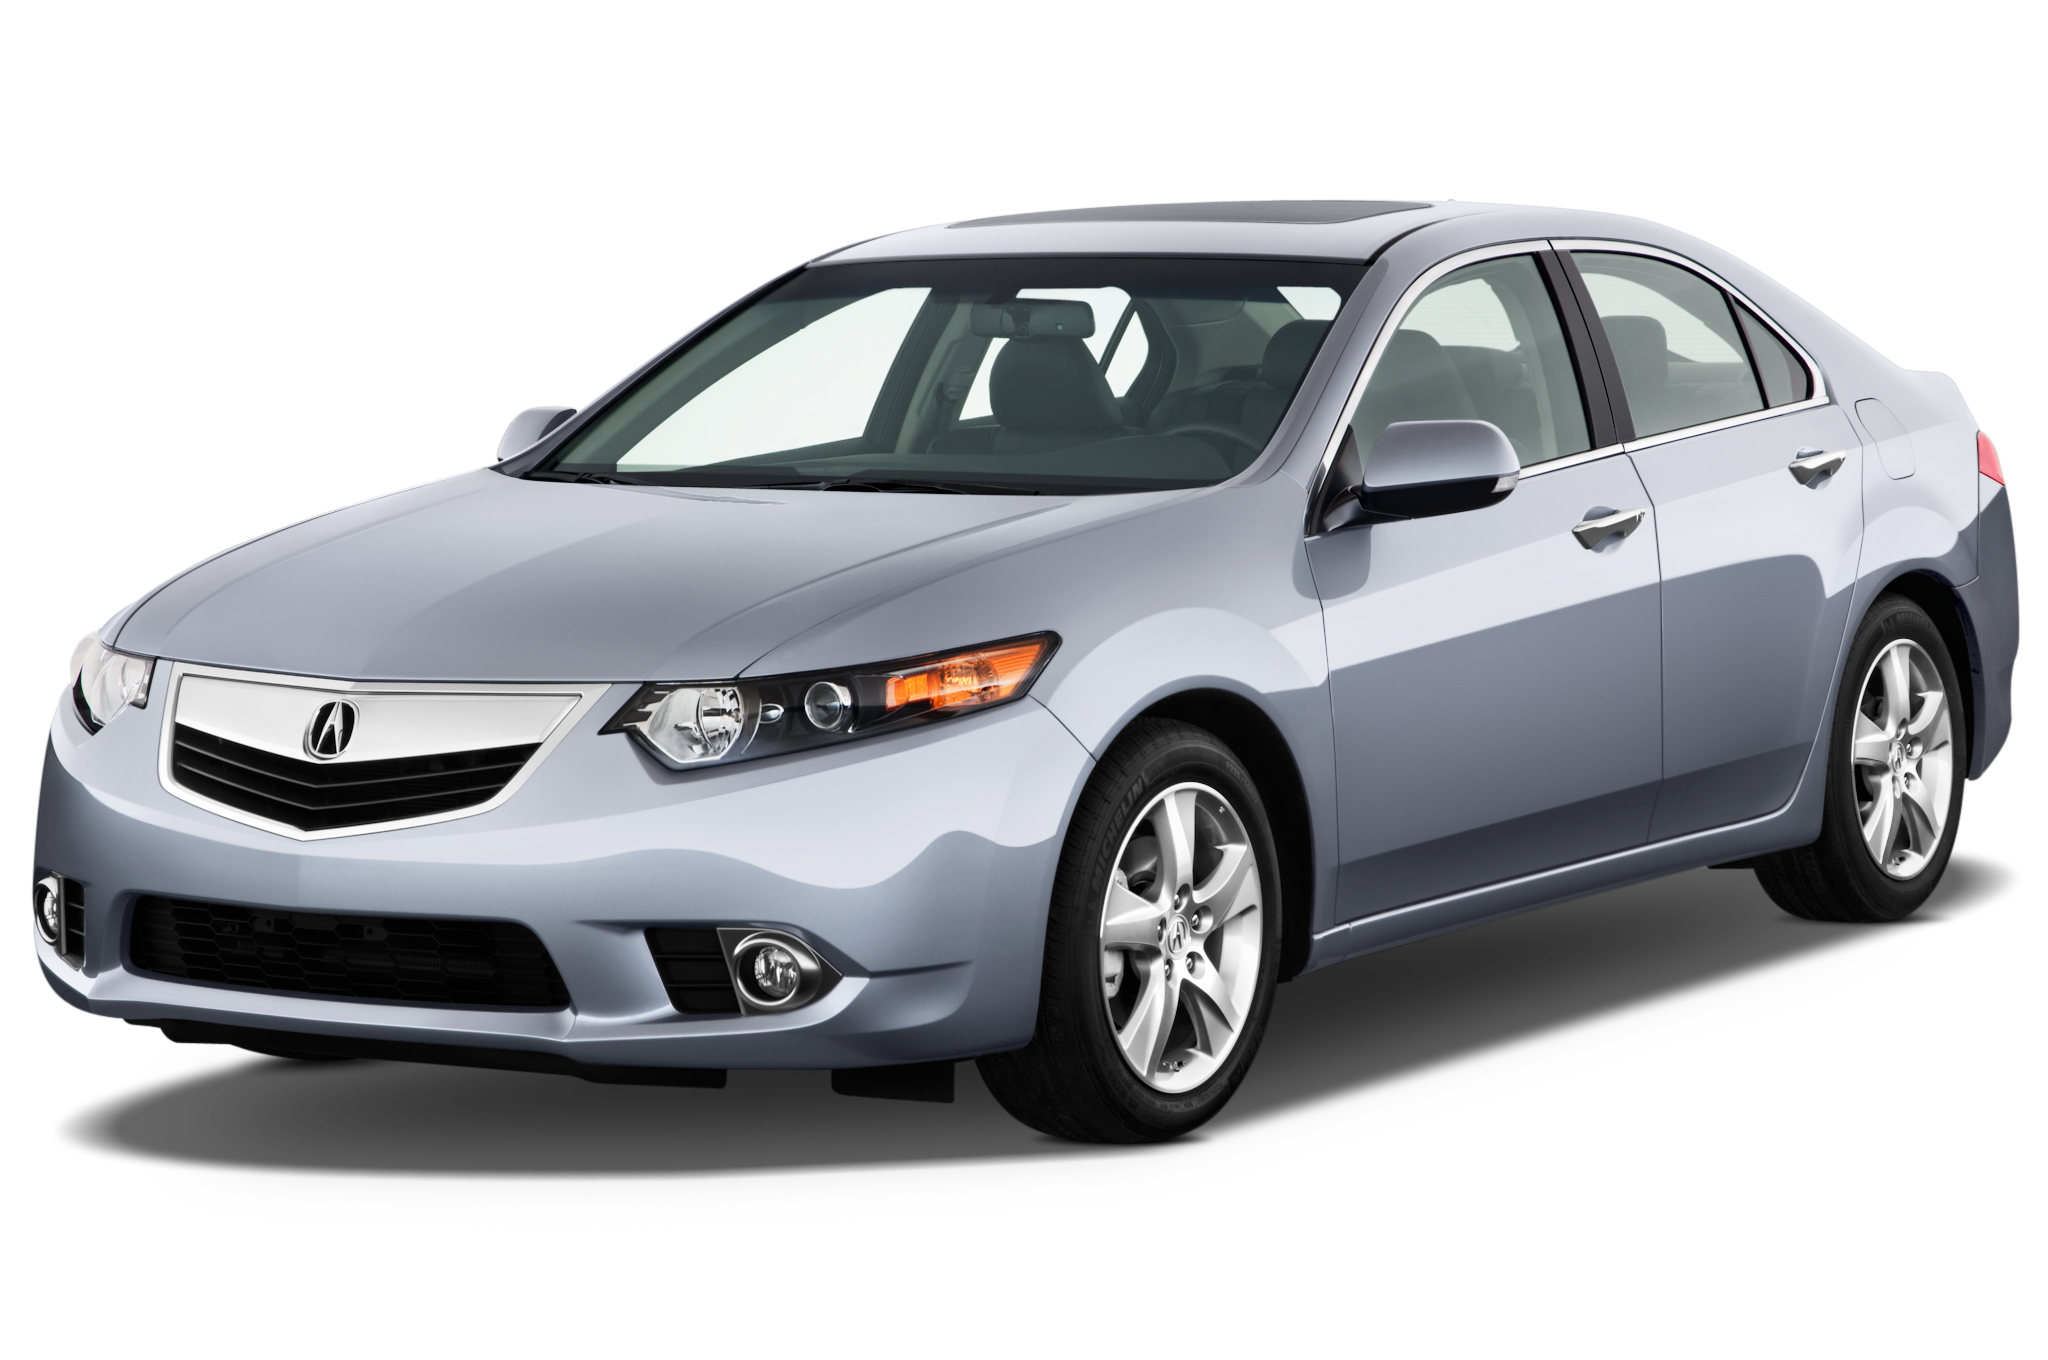 acura ilx hybrid reviews research new used models motor trend. Black Bedroom Furniture Sets. Home Design Ideas